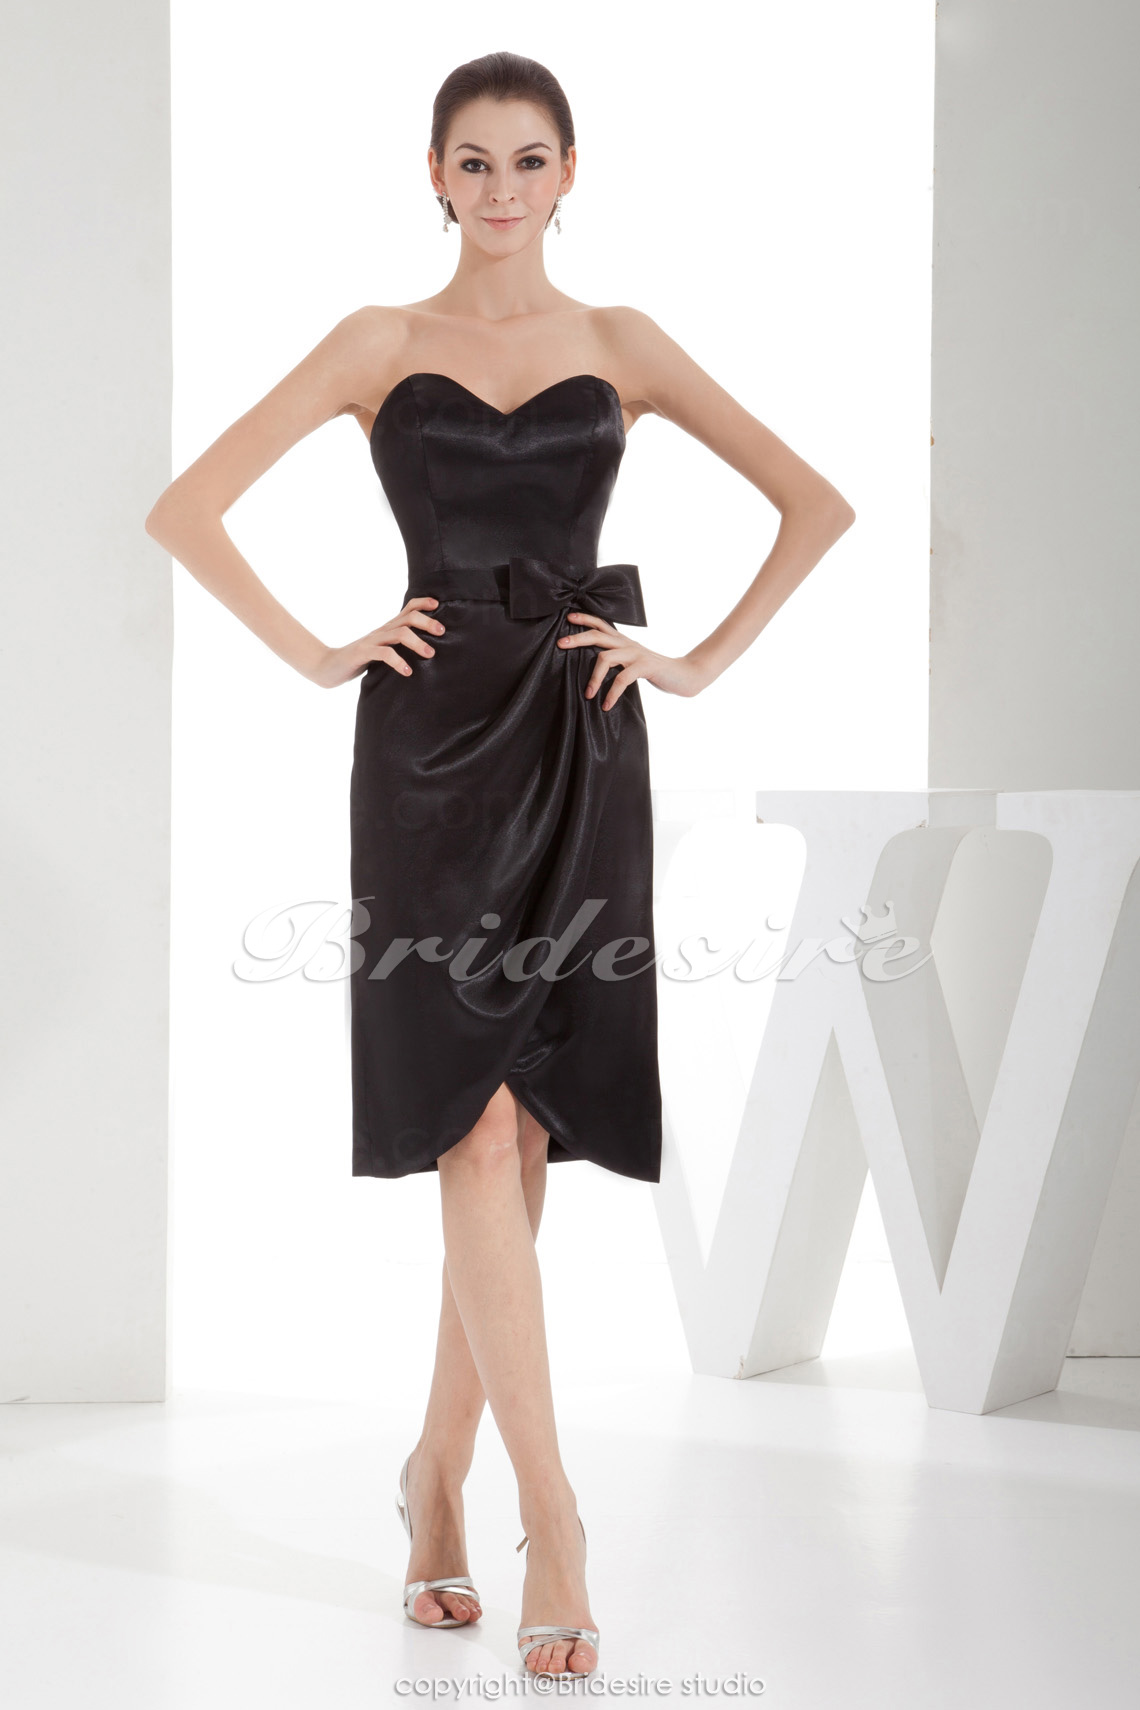 Sheath/Column Sweetheart Knee-length Sleeveless Satin Dress